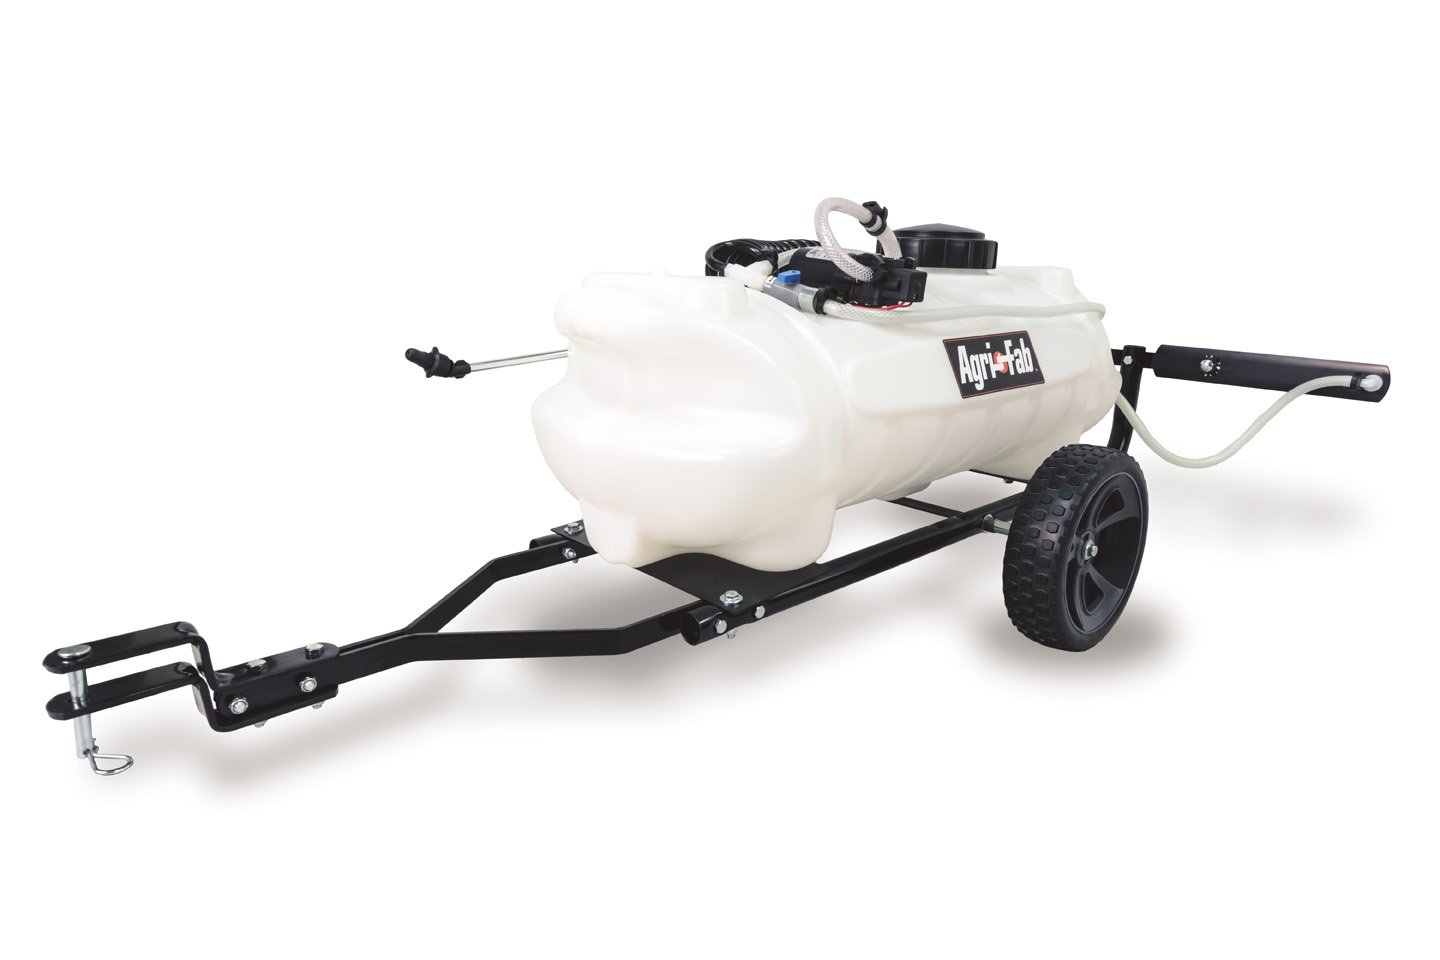 Best Tow Behind Sprayer in 2019 - Reviews on Top 5 Products